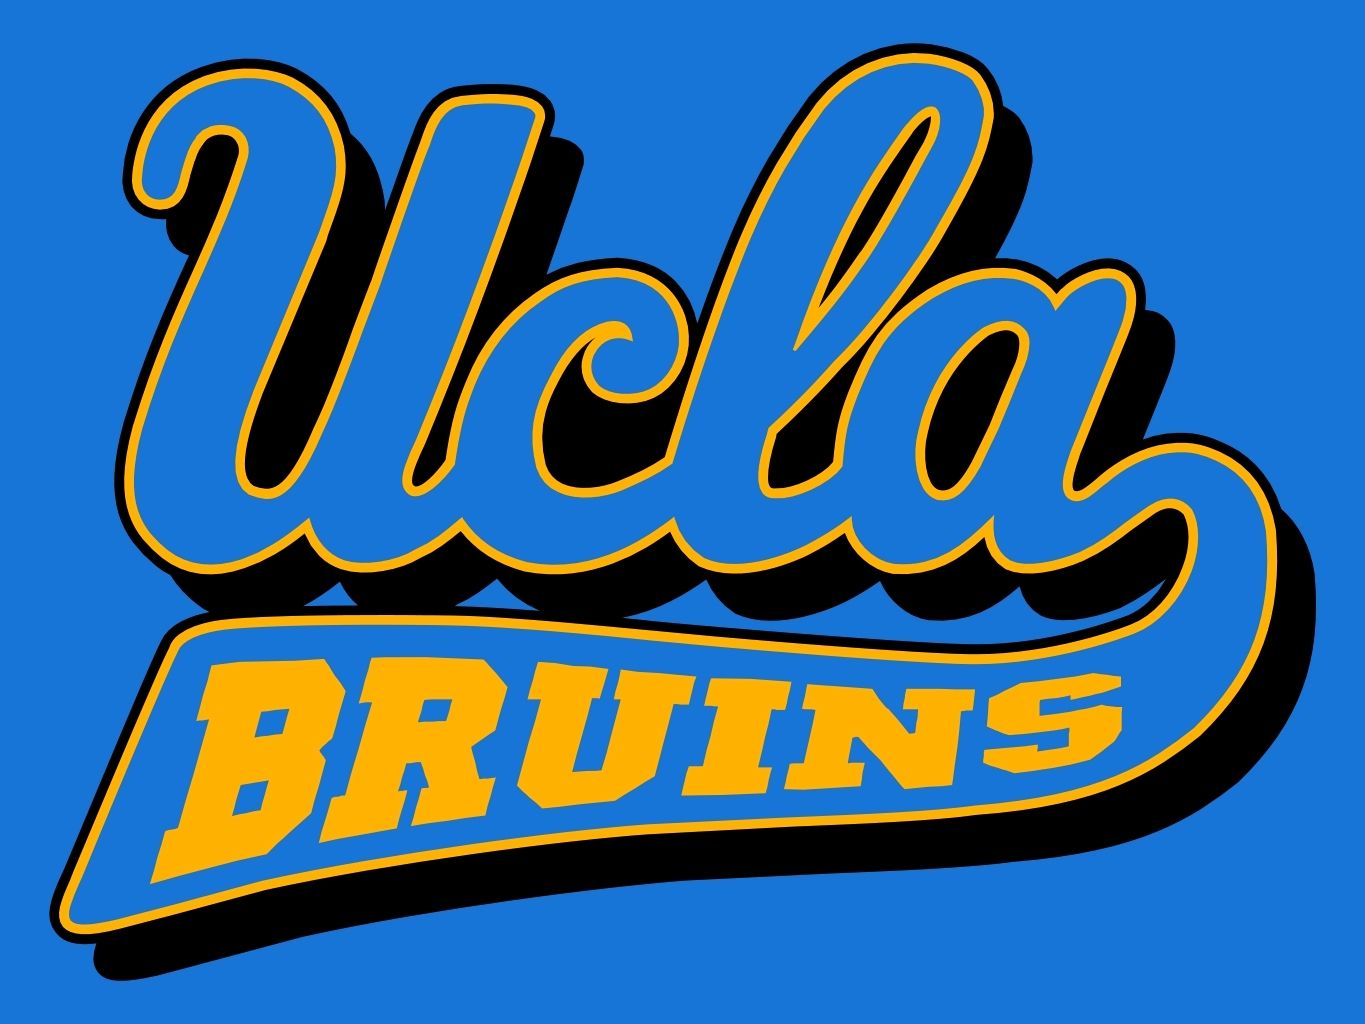 Color printing ucla - Ucla University Of California Los Angeles Bruins